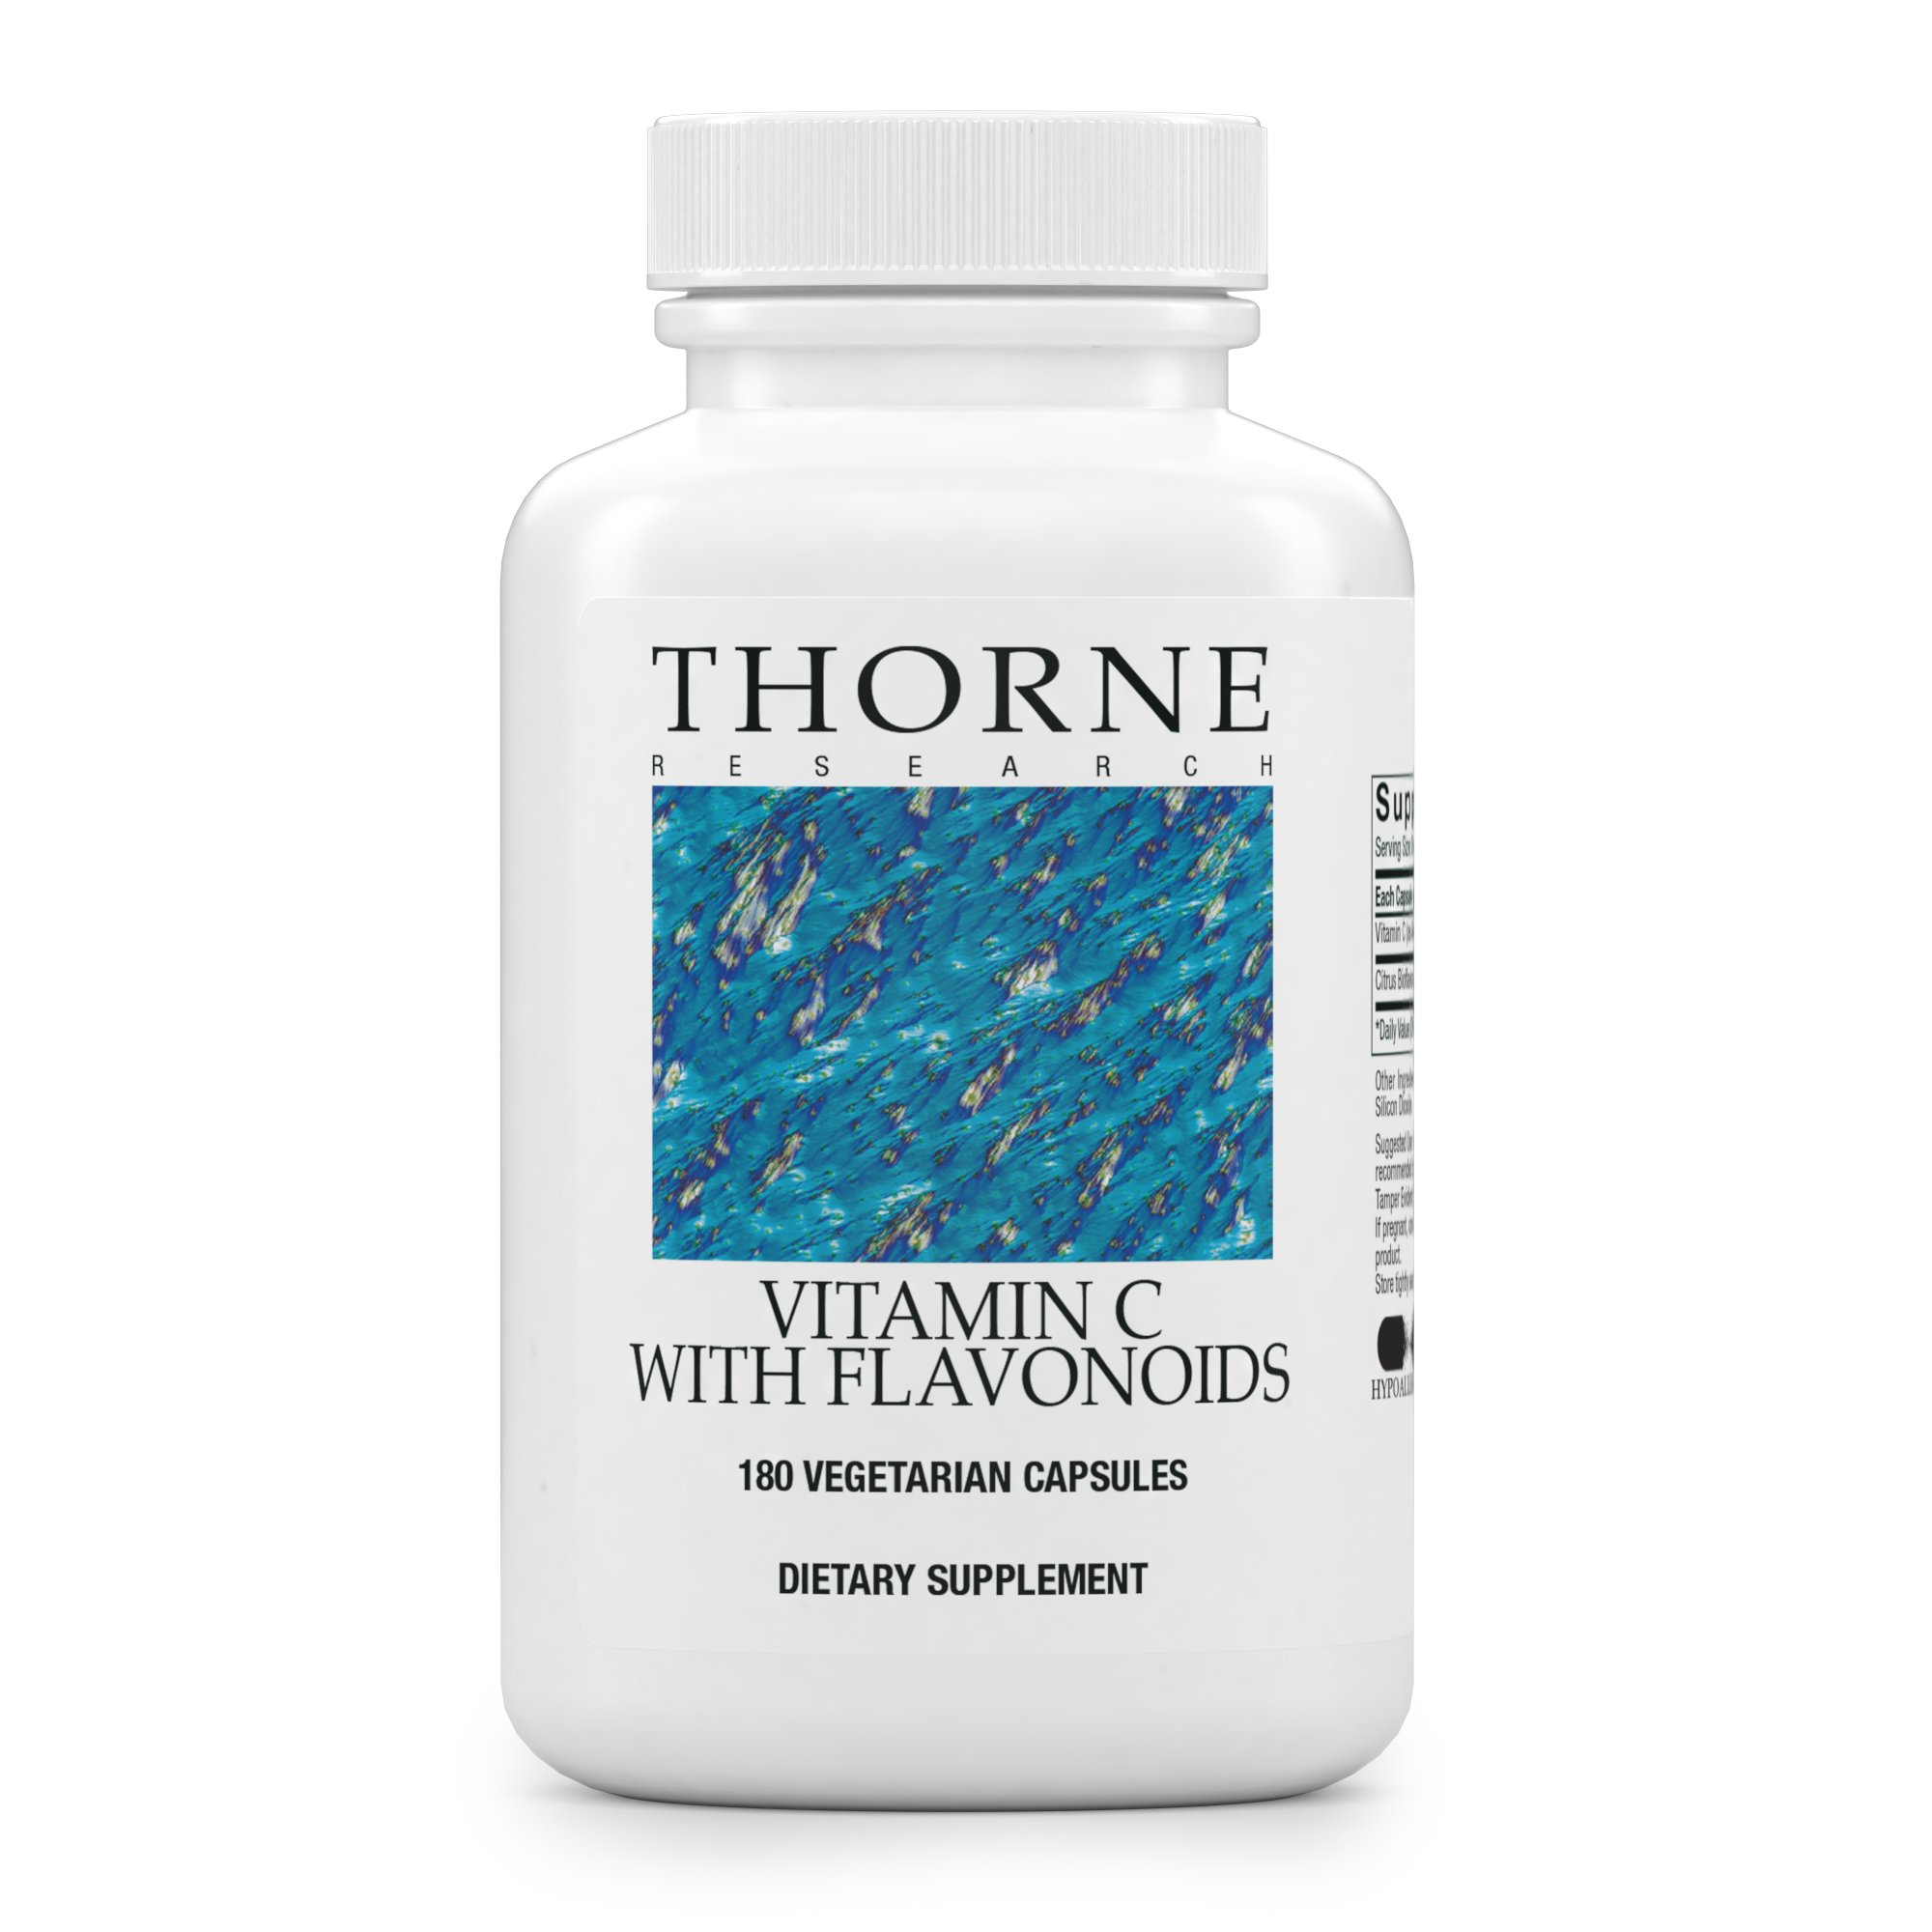 Thorne Research - Vitamin C with Flavonoids - Blend of Vitamin C and Citrus Bioflavonoids from Oranges, the Way They're Found Together in Nature - 180 Capsules